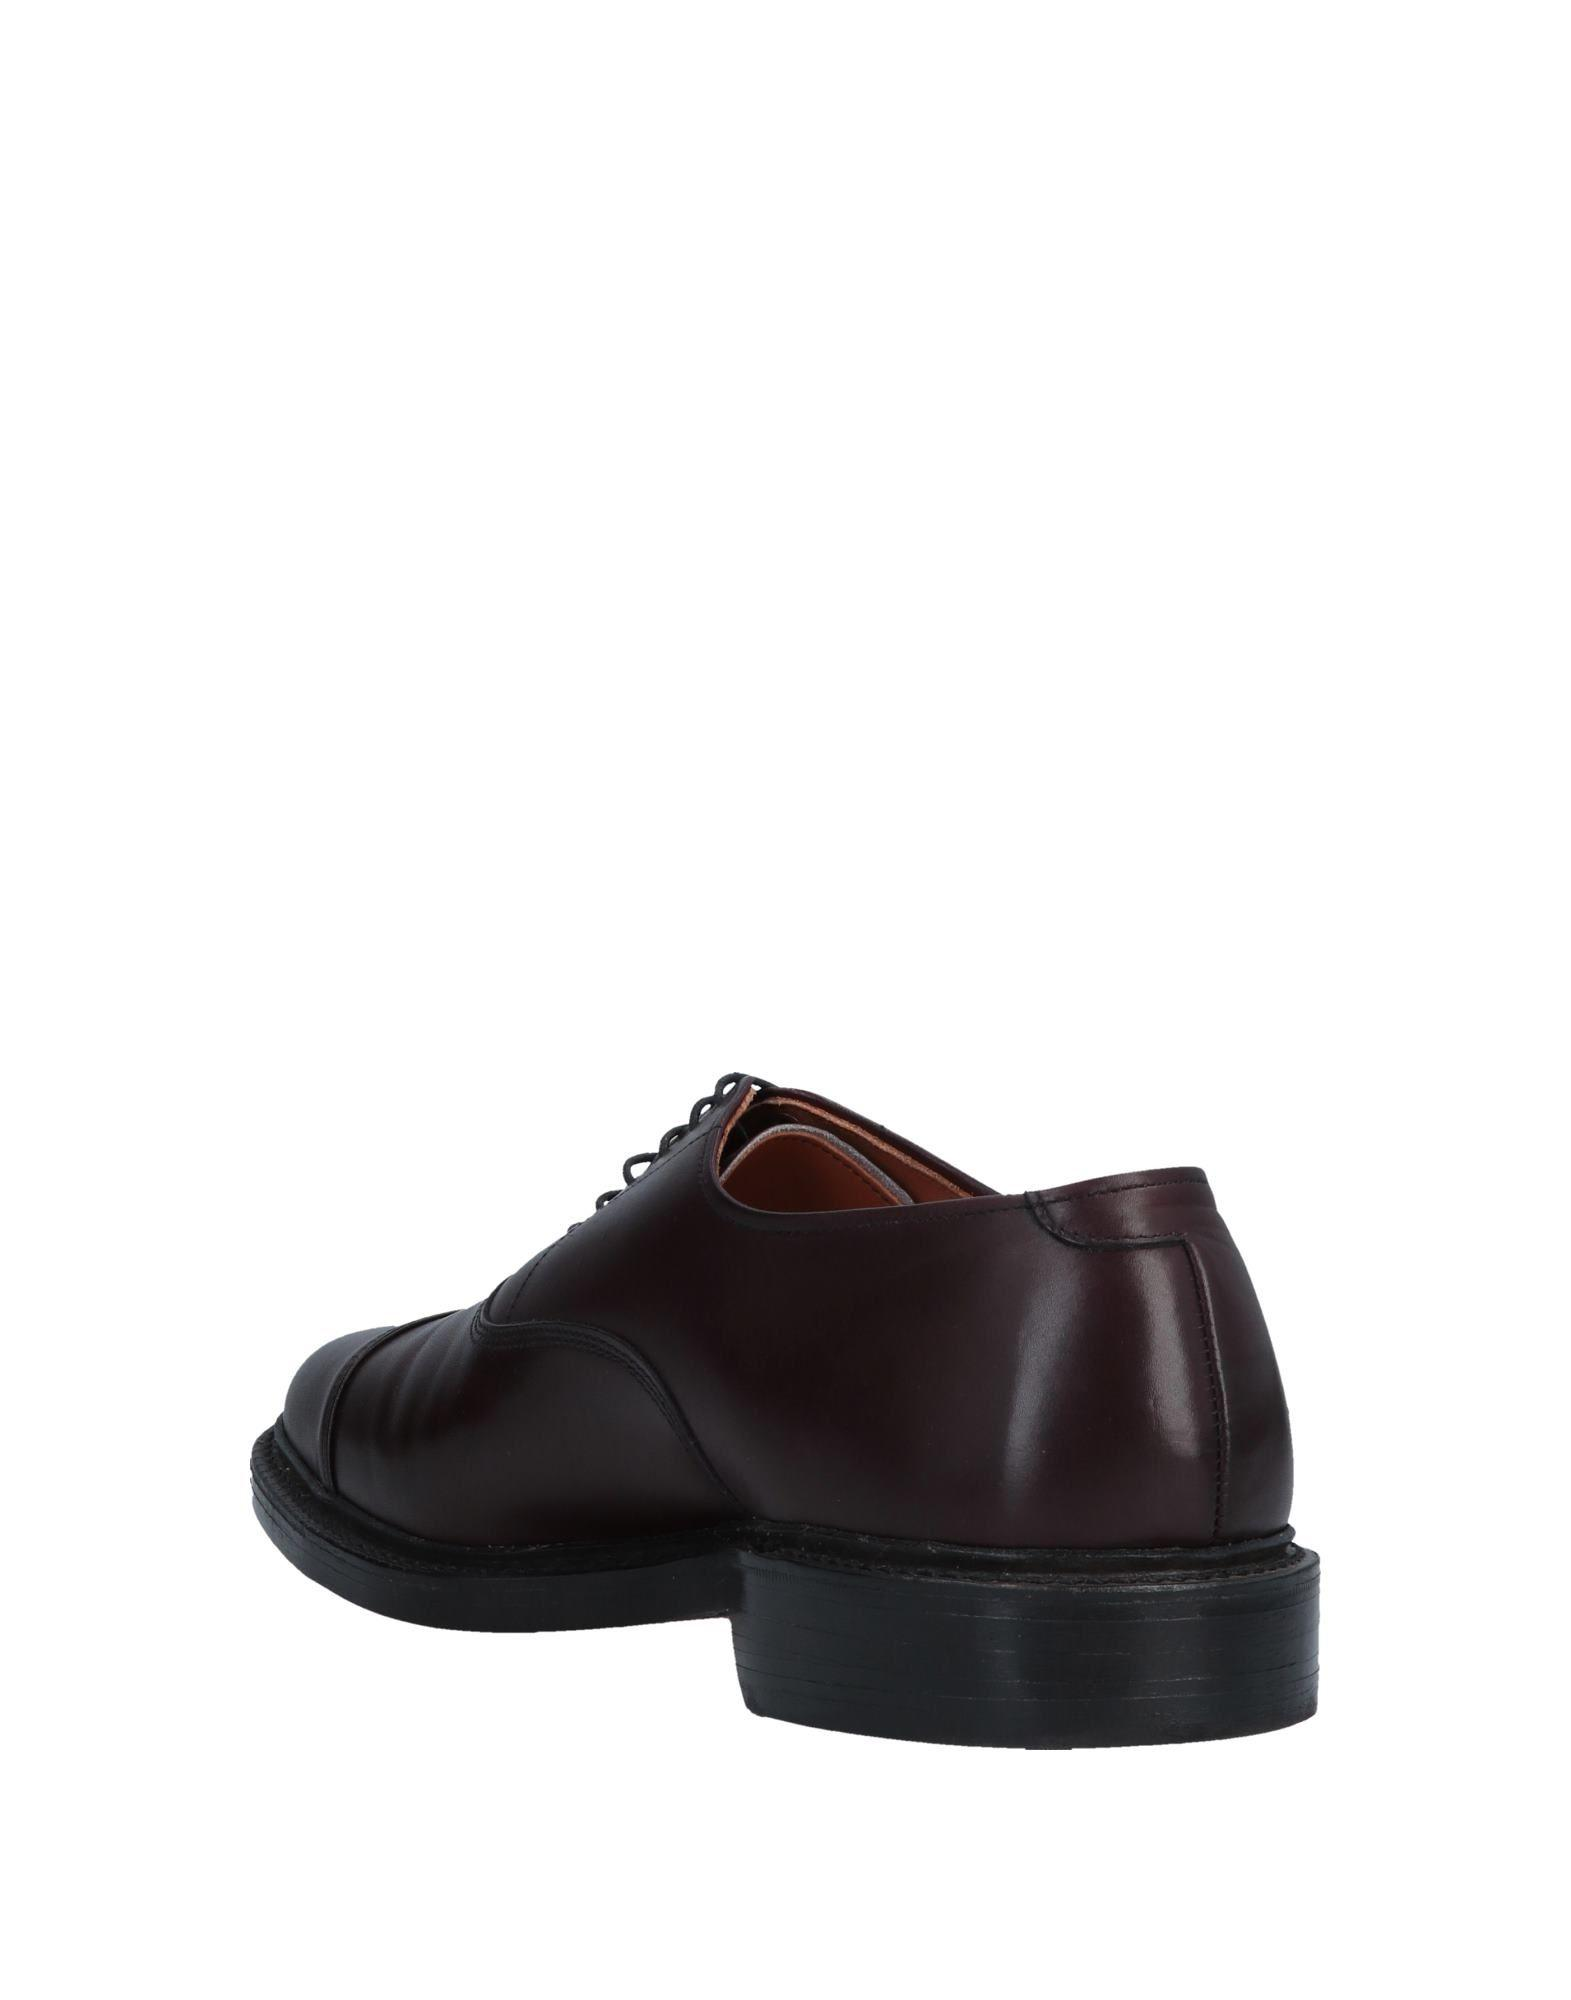 Lyst Shoe Edmonds Lace for Brown Allen Men up in OppgWH